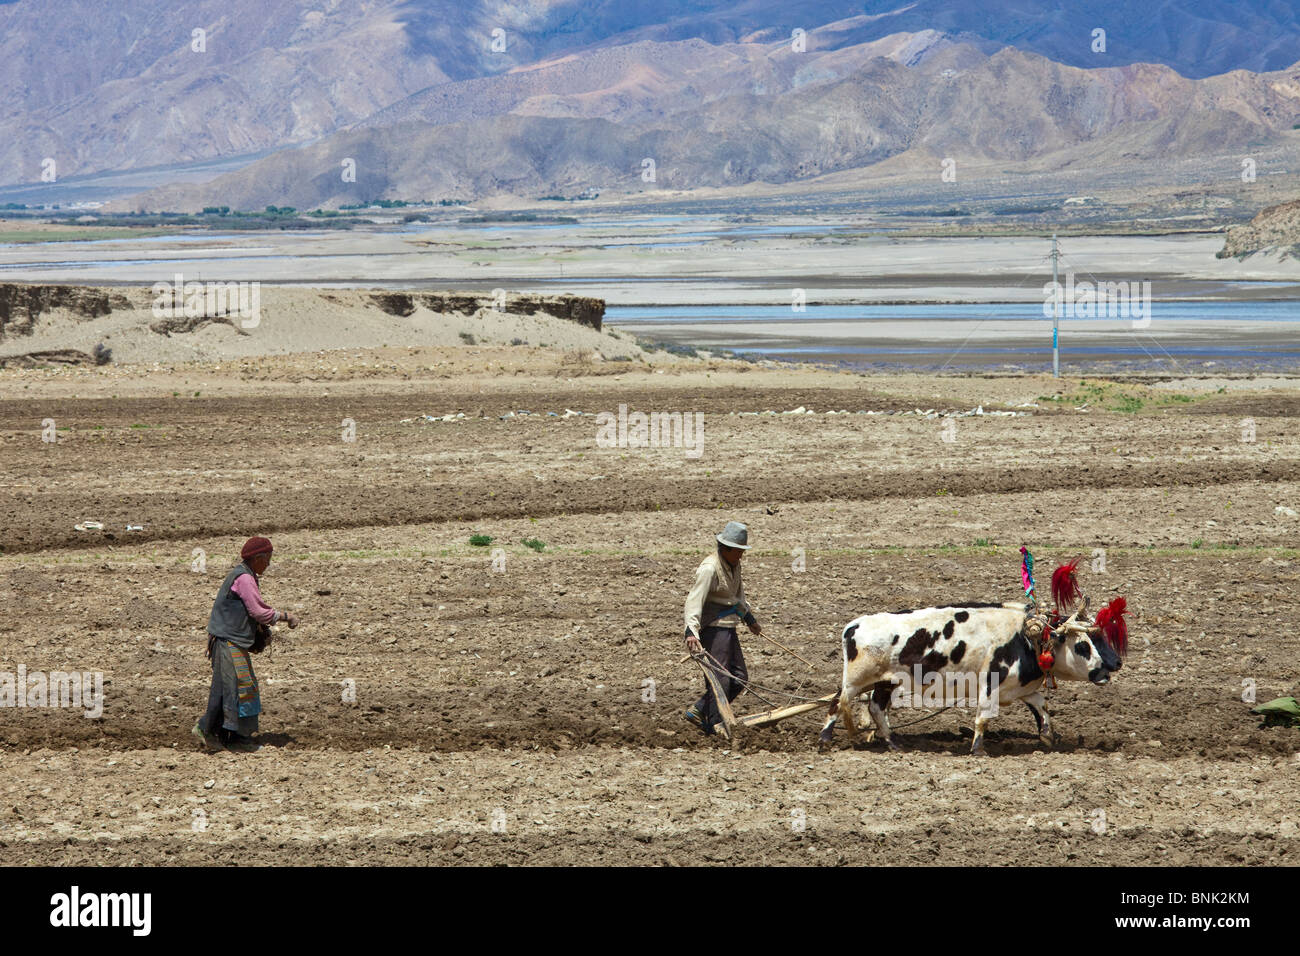 Farmers plowing and planting in rural Tibet - Stock Image